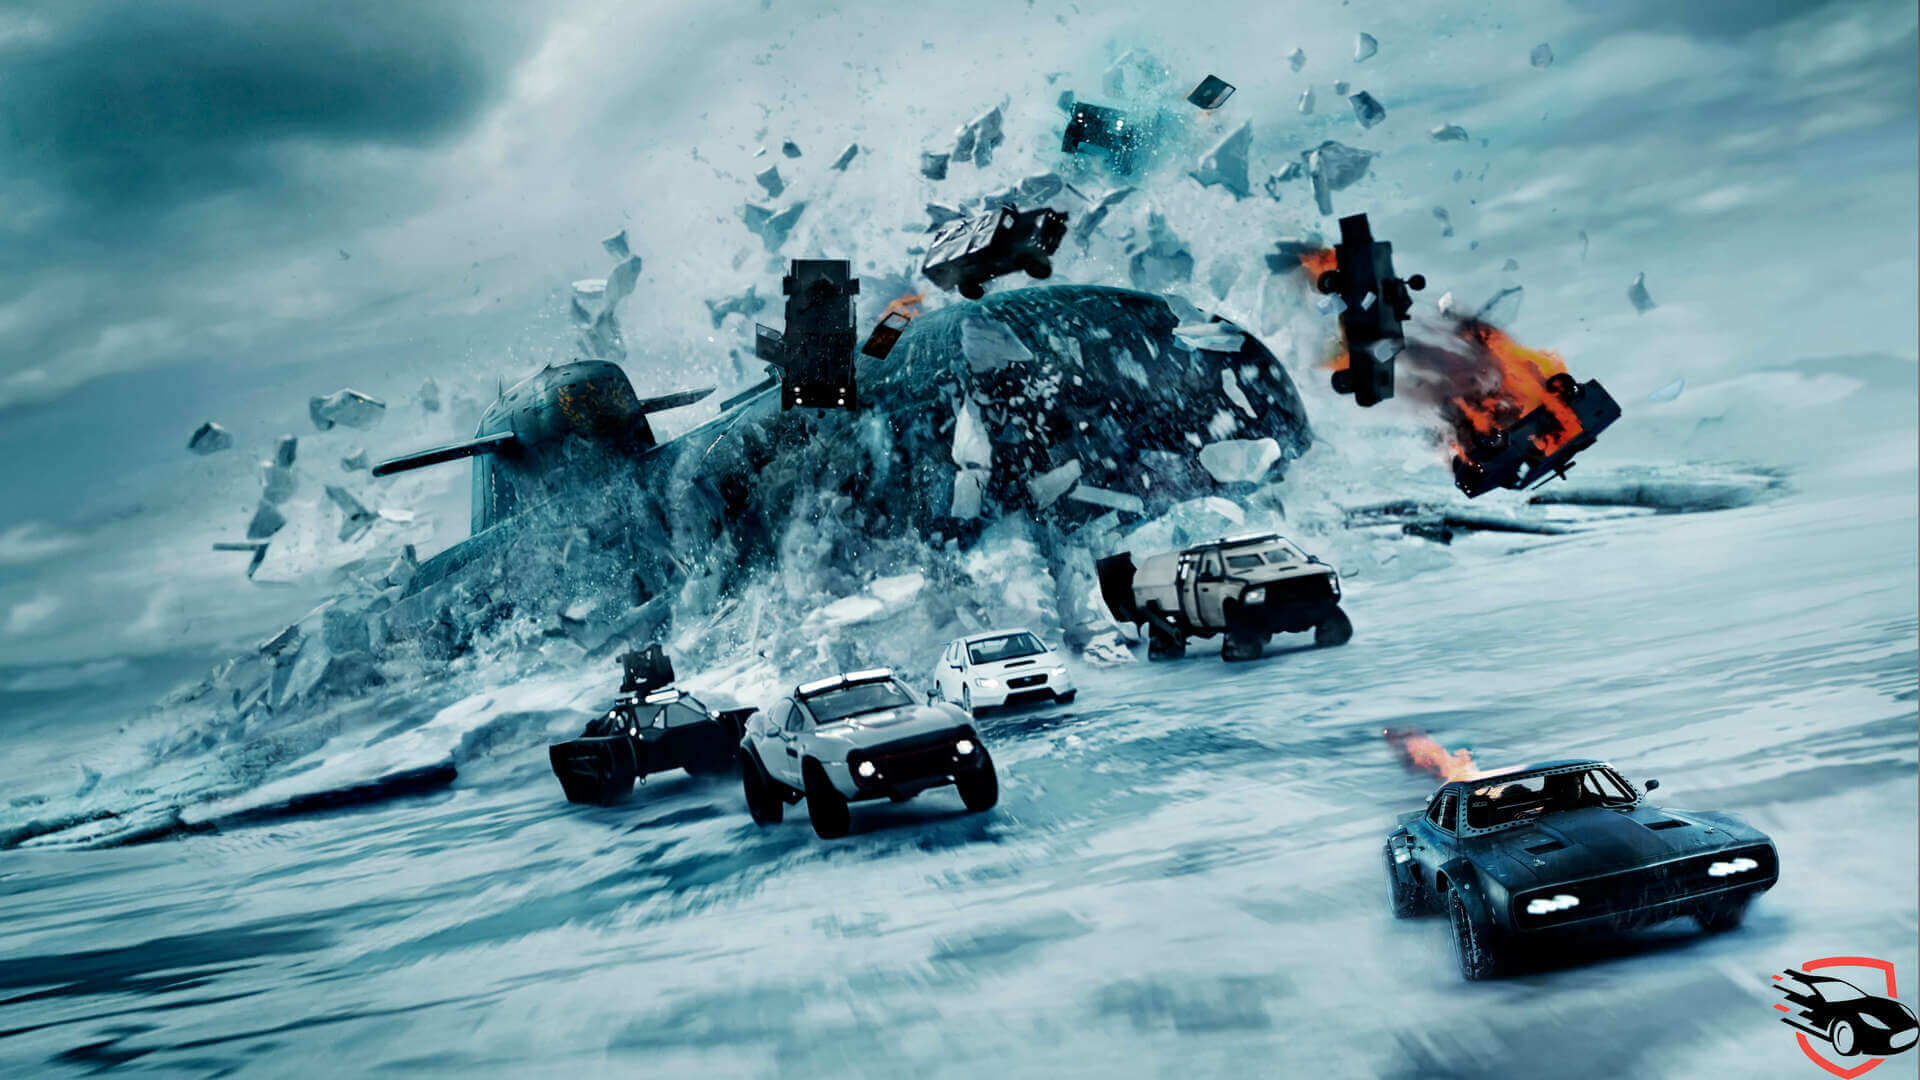 Форсаж 8, The Fate of the Furious